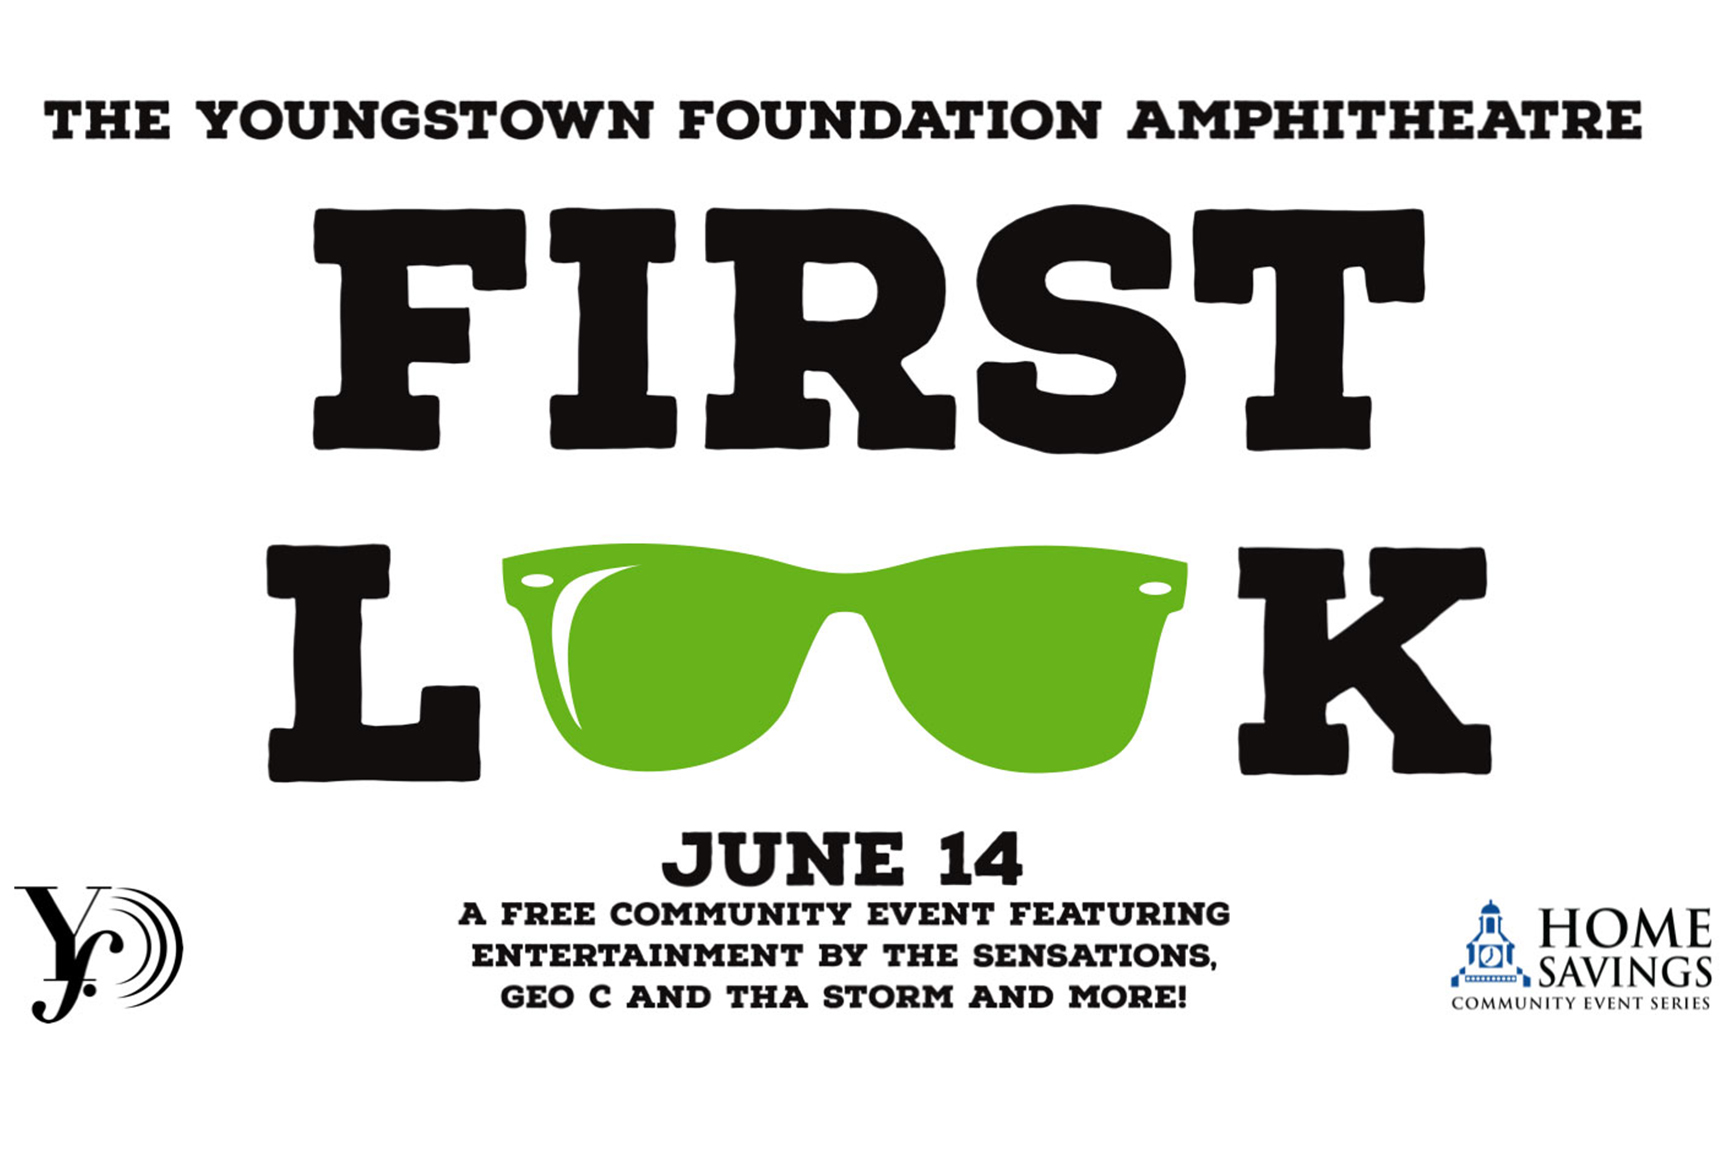 The Youngstown Foundation Amphitheatre First Look